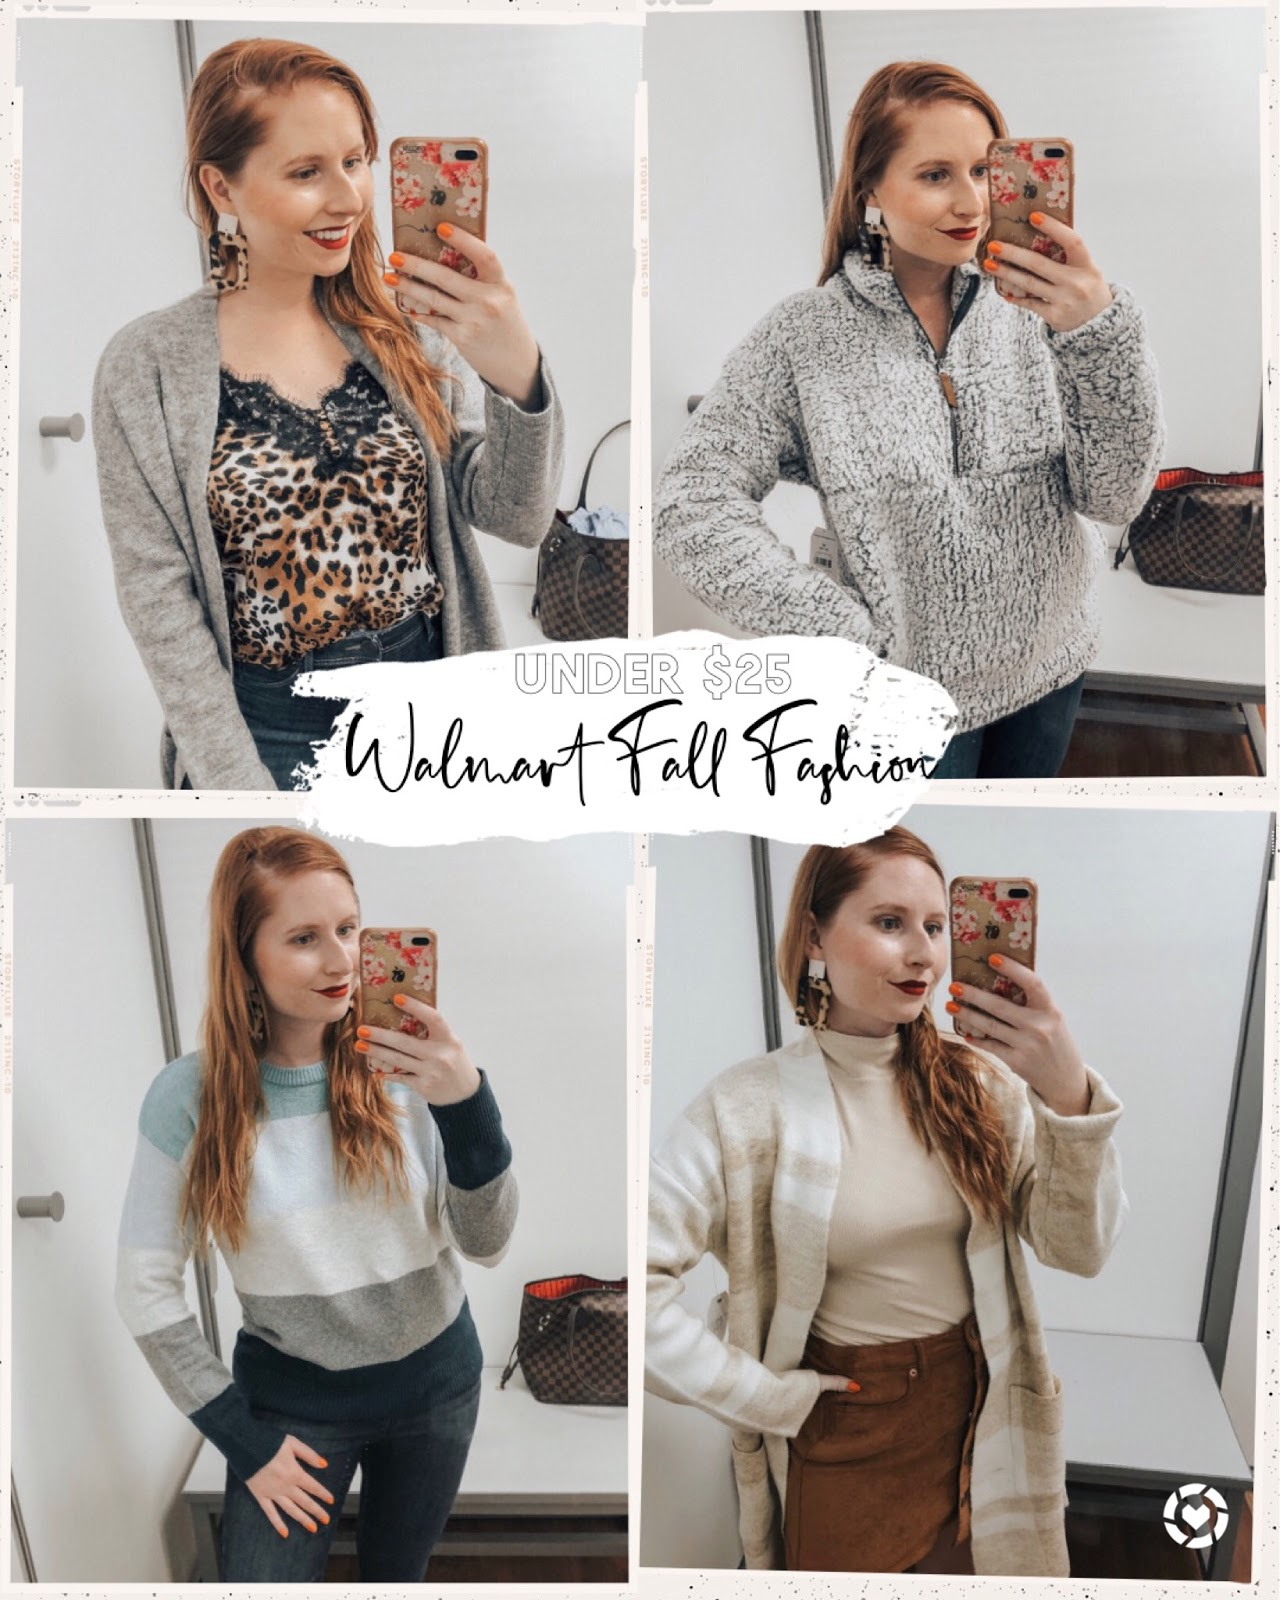 October Walmart Try-On Outfits Under $25. Affordable by Amanda, Tampa based style blogger shares her list of Walmart fashion finds.